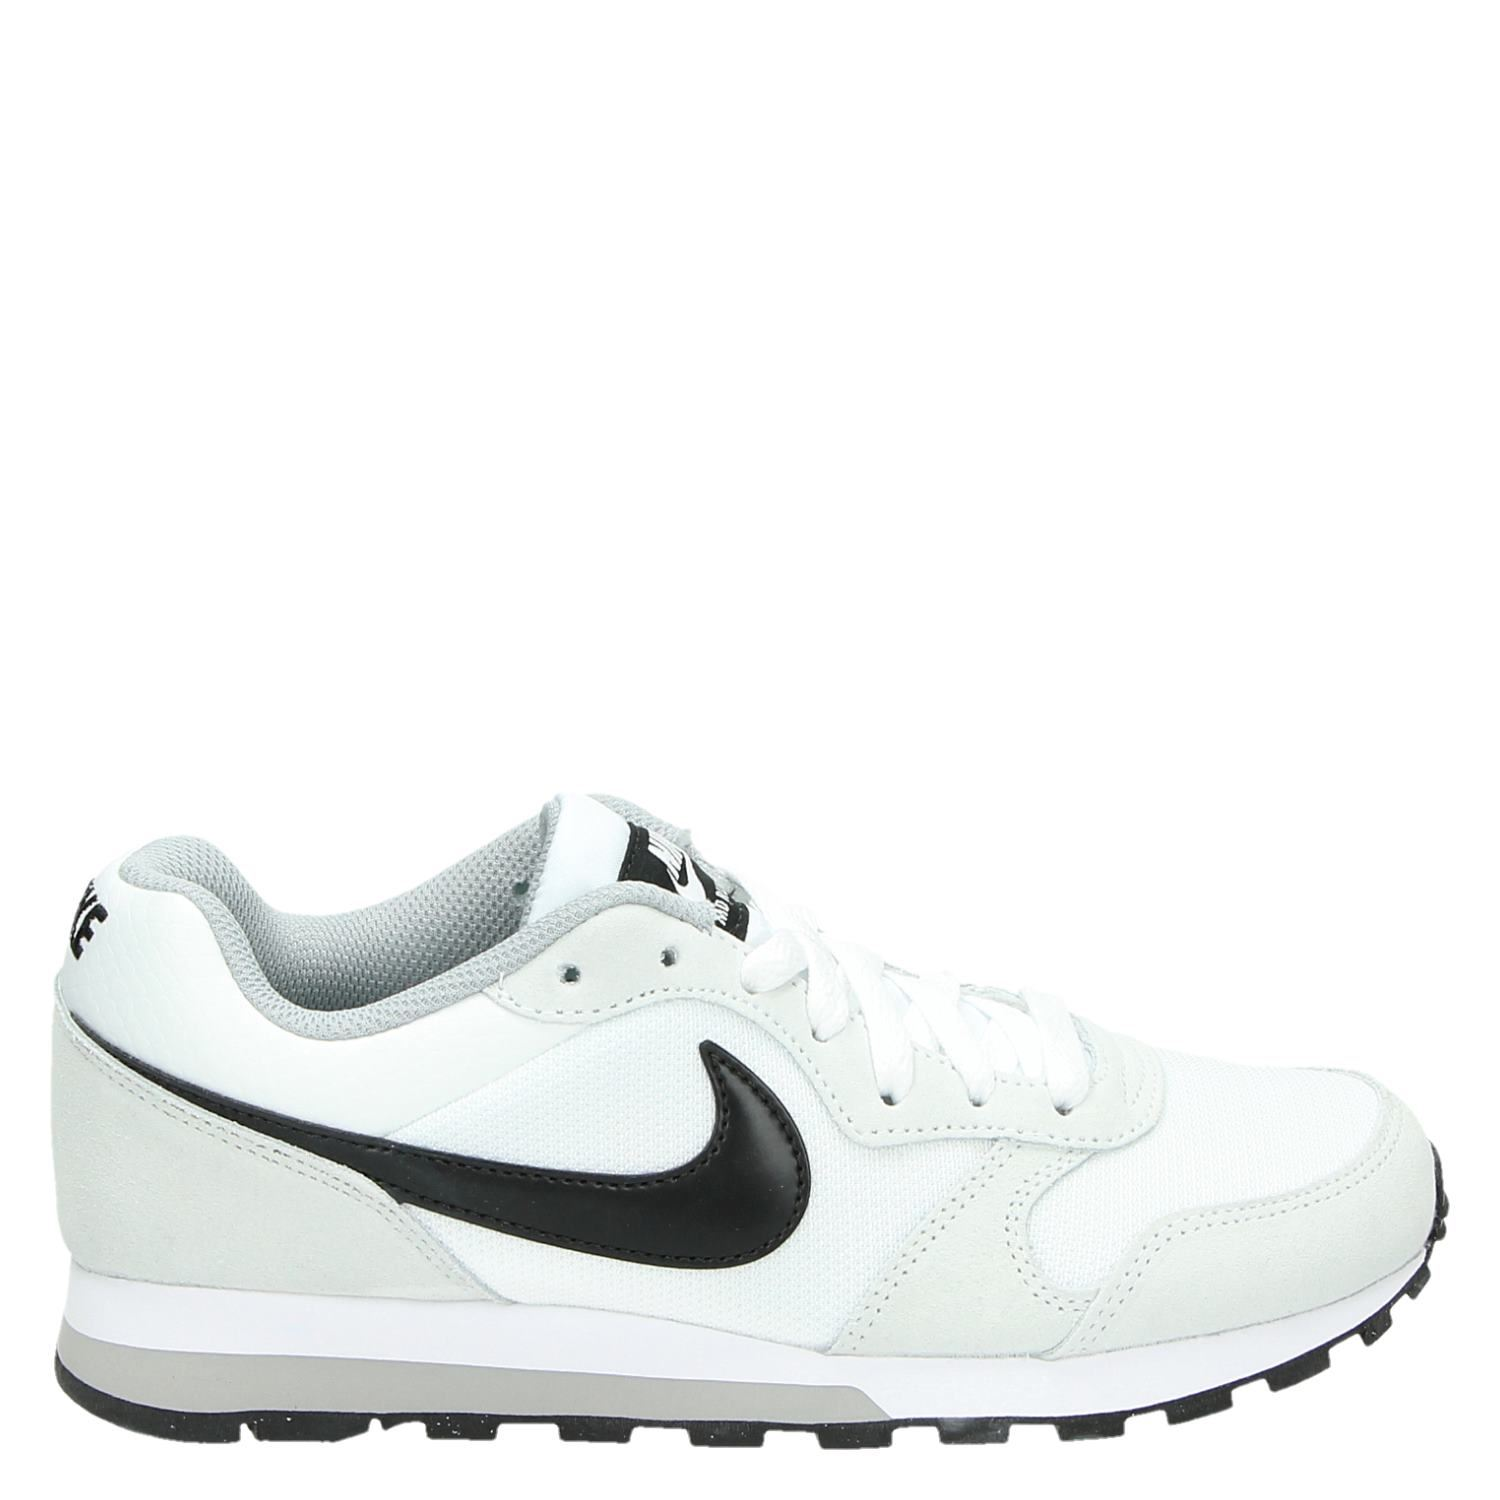 on sale 1a22d 39a99 Nike MD Runner 2 dames lage sneakers